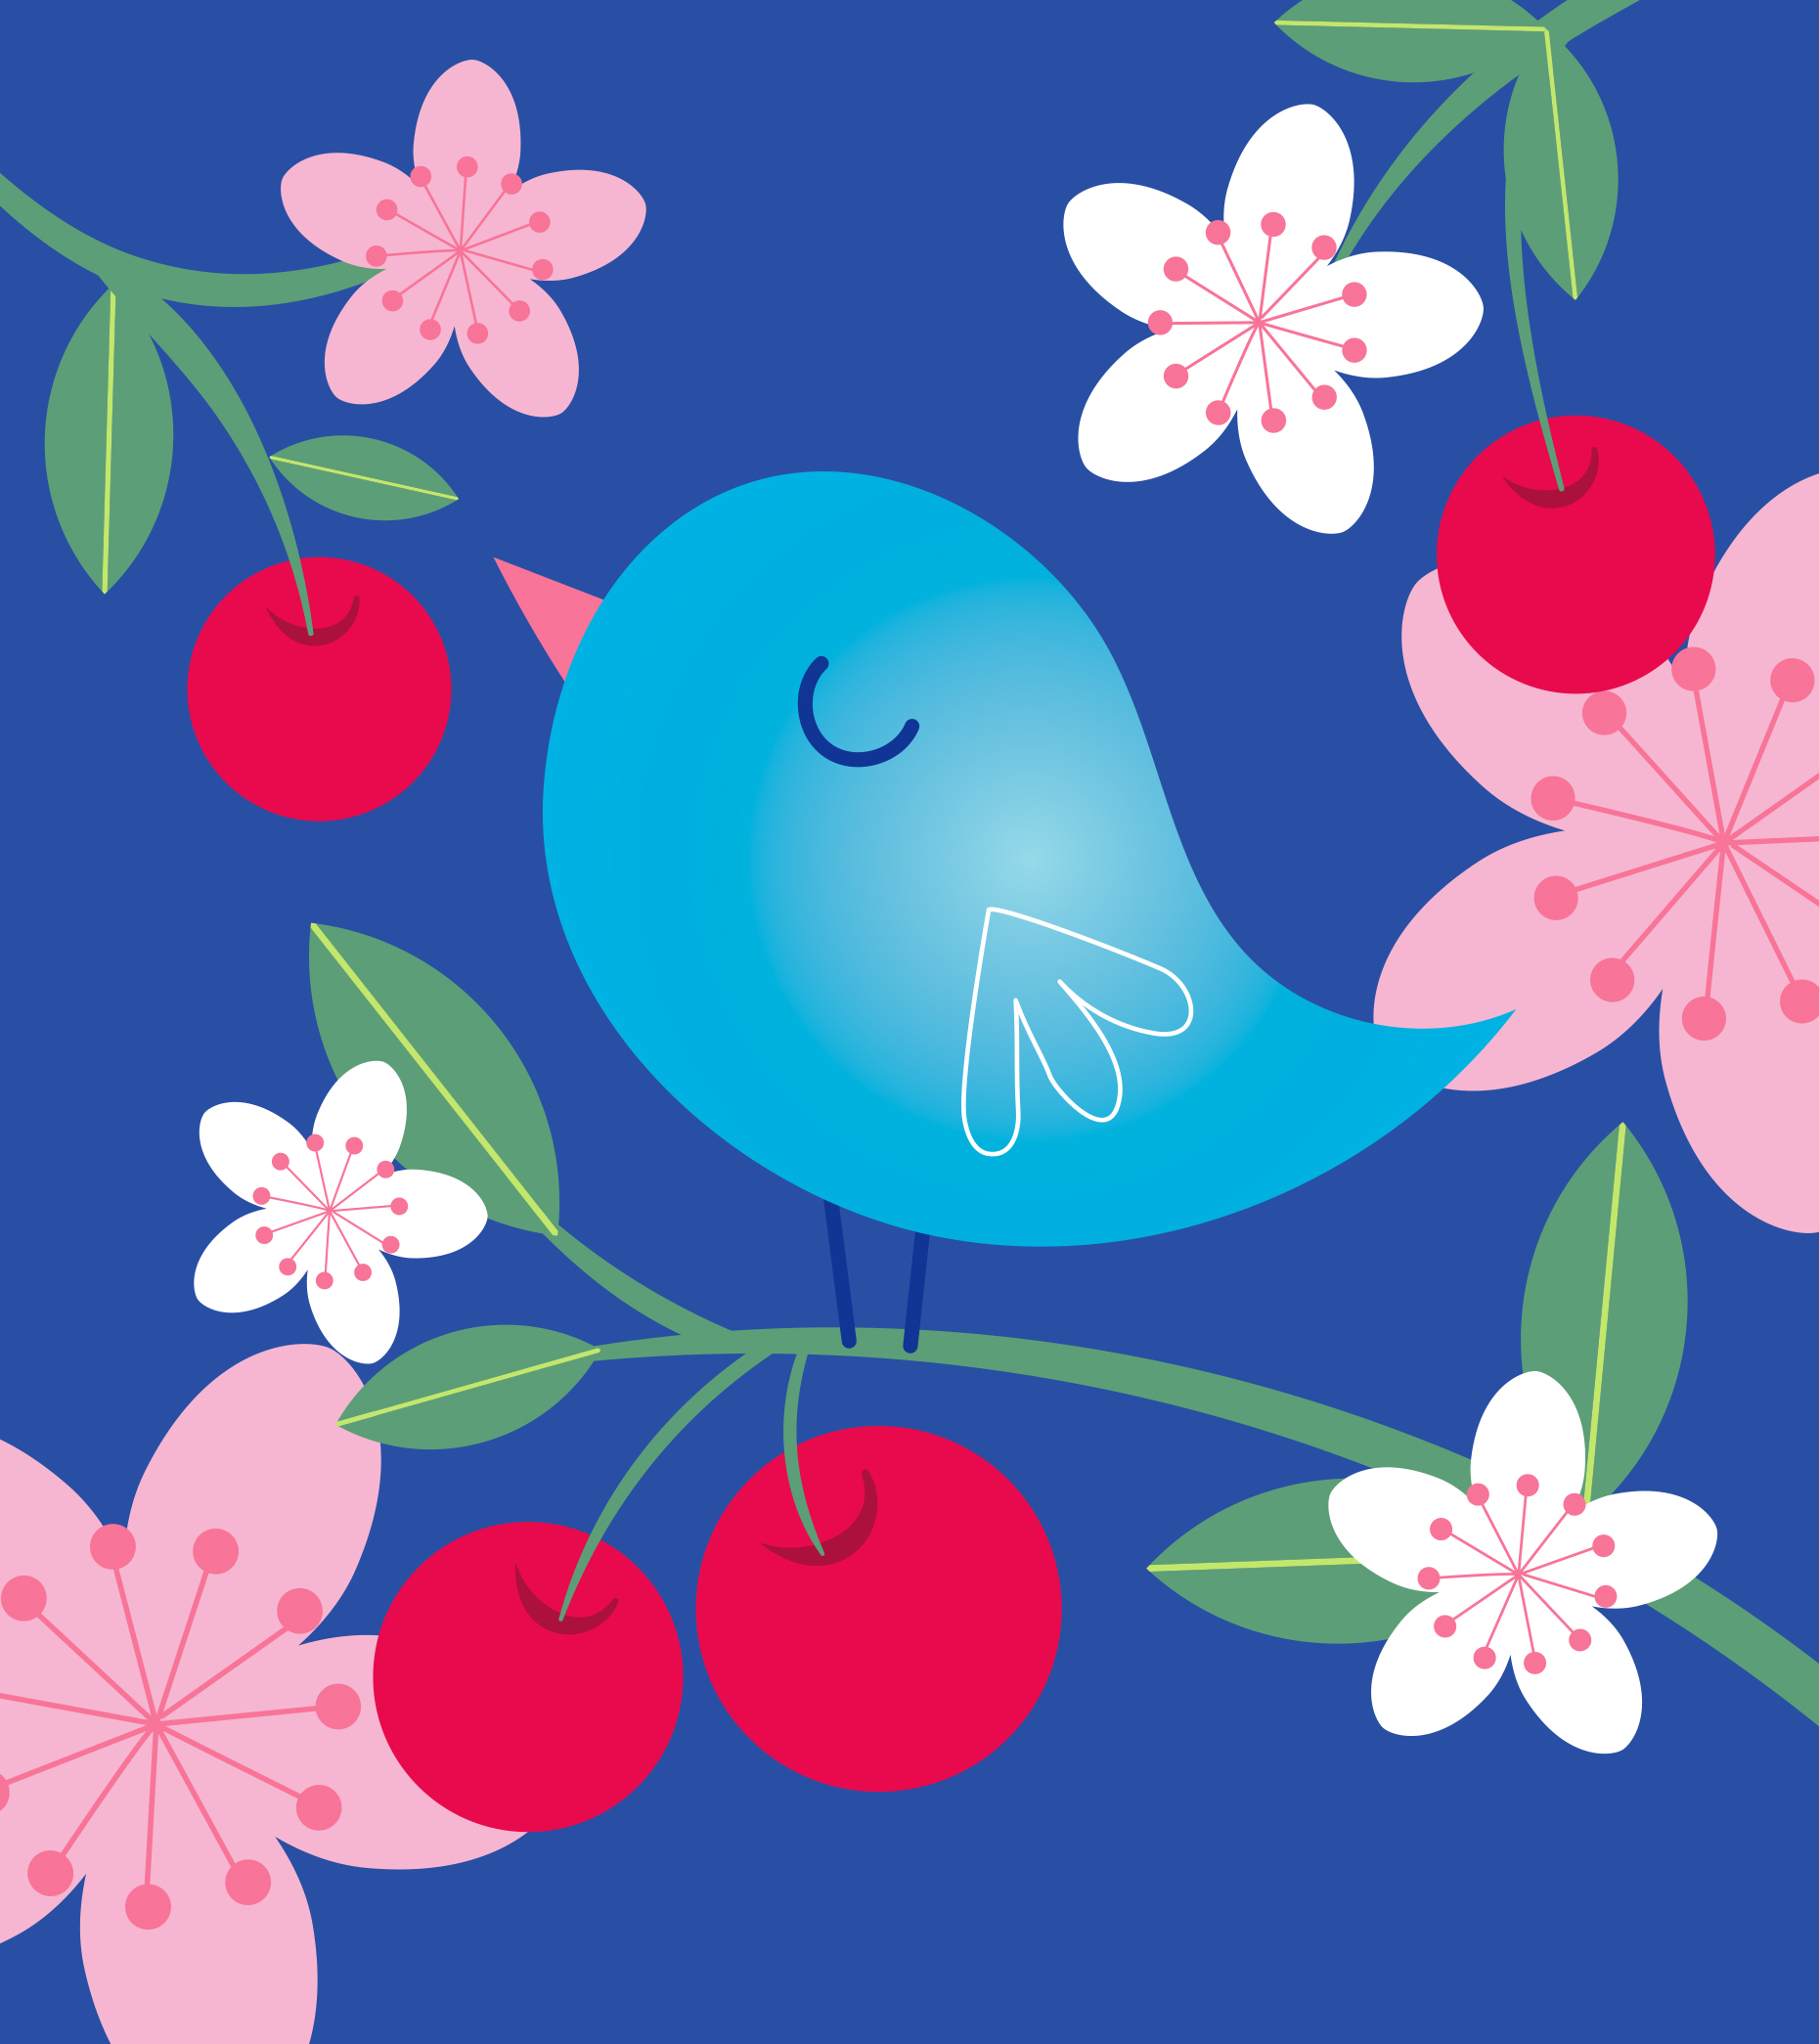 Mona Daly Illustration Bluebird and cherries